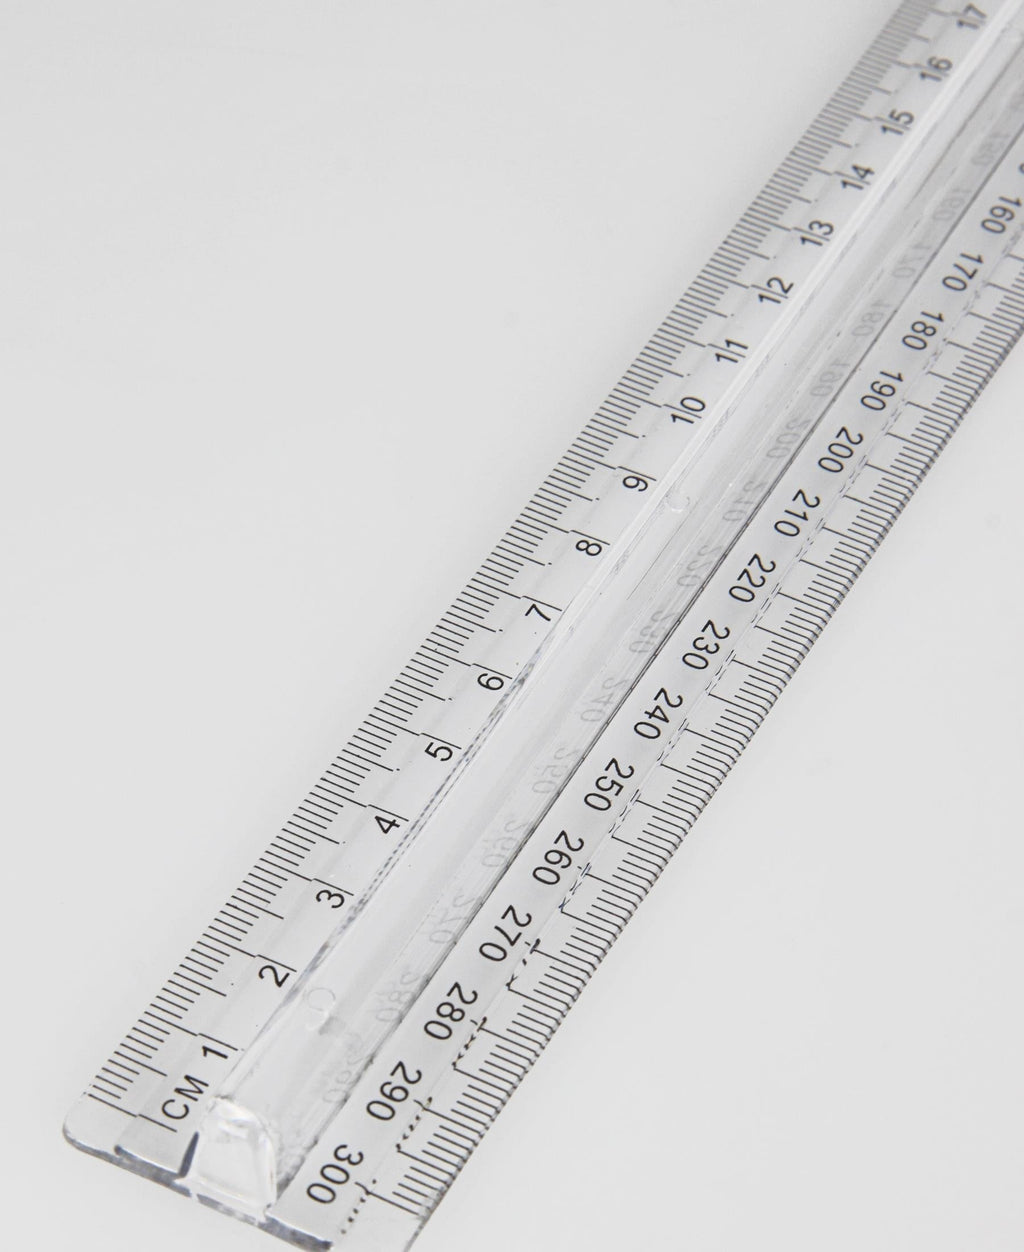 Marlin Finger Grip Ruler - Clear